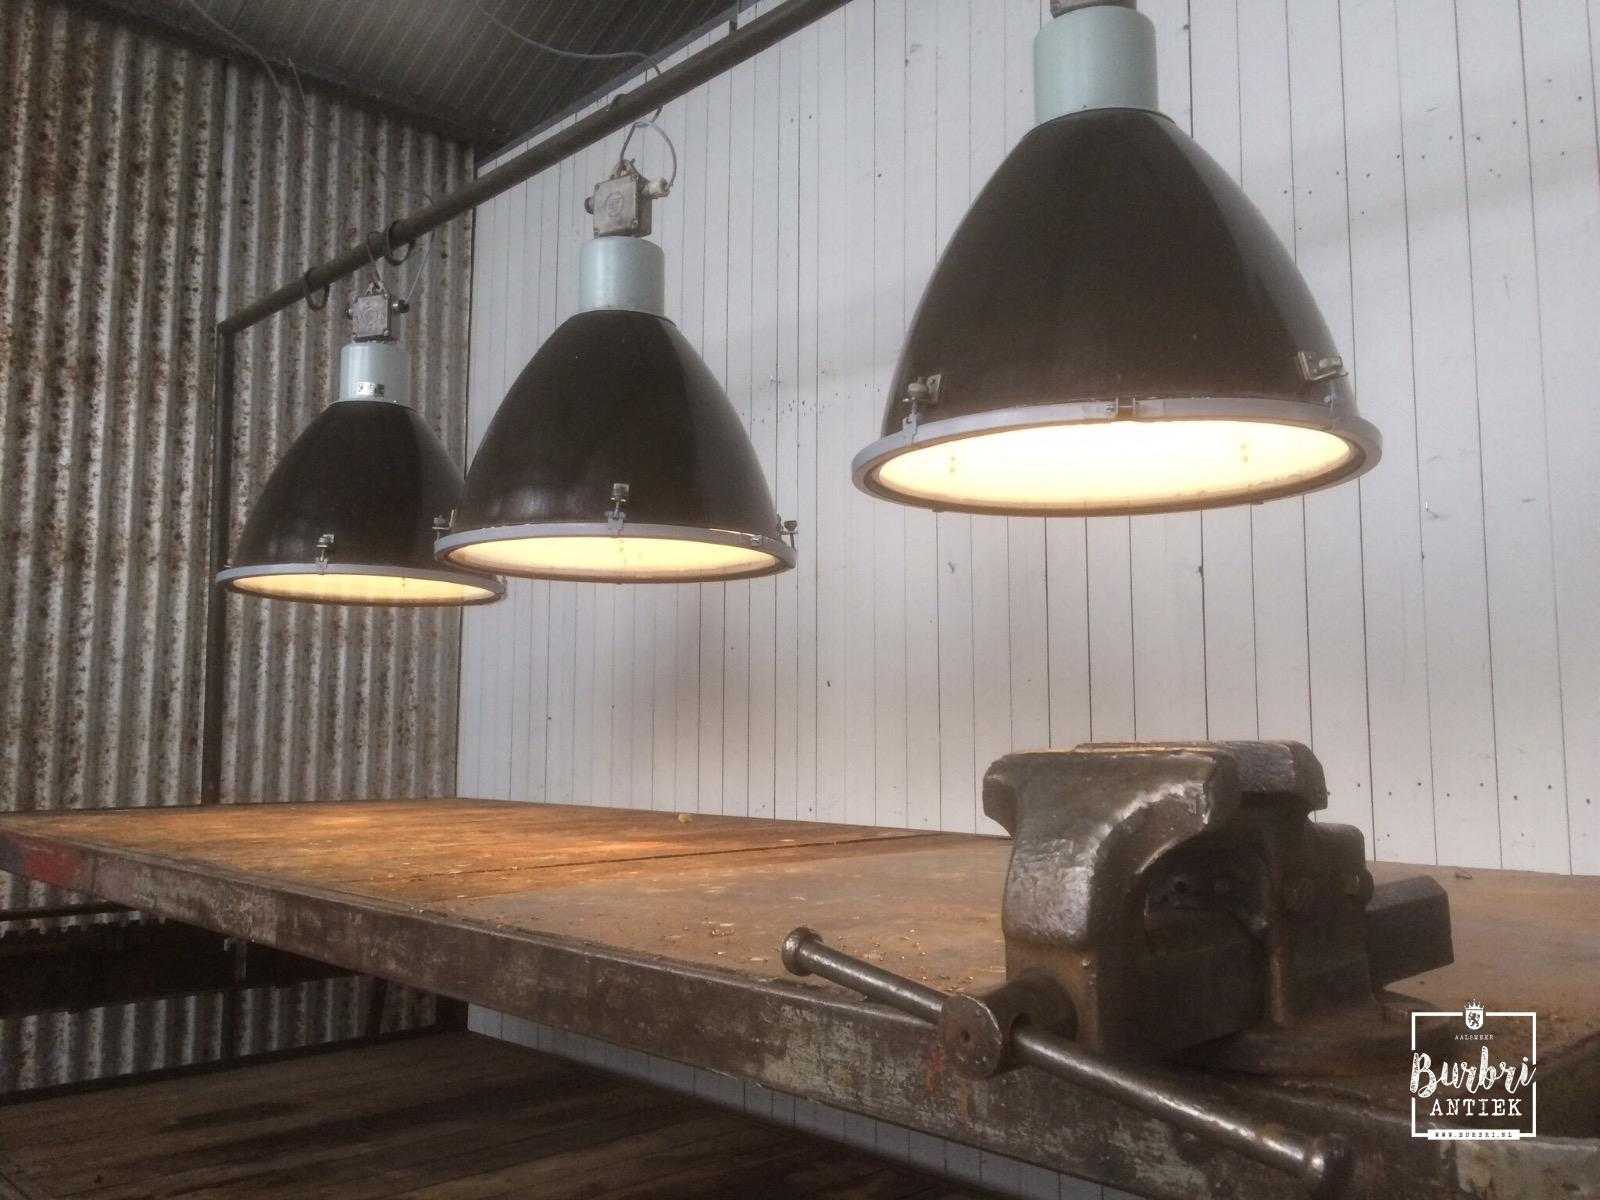 More avaible industrial old factory lamp pendant light industri le hang lampen industri le - Industriele kantoorlamp ...